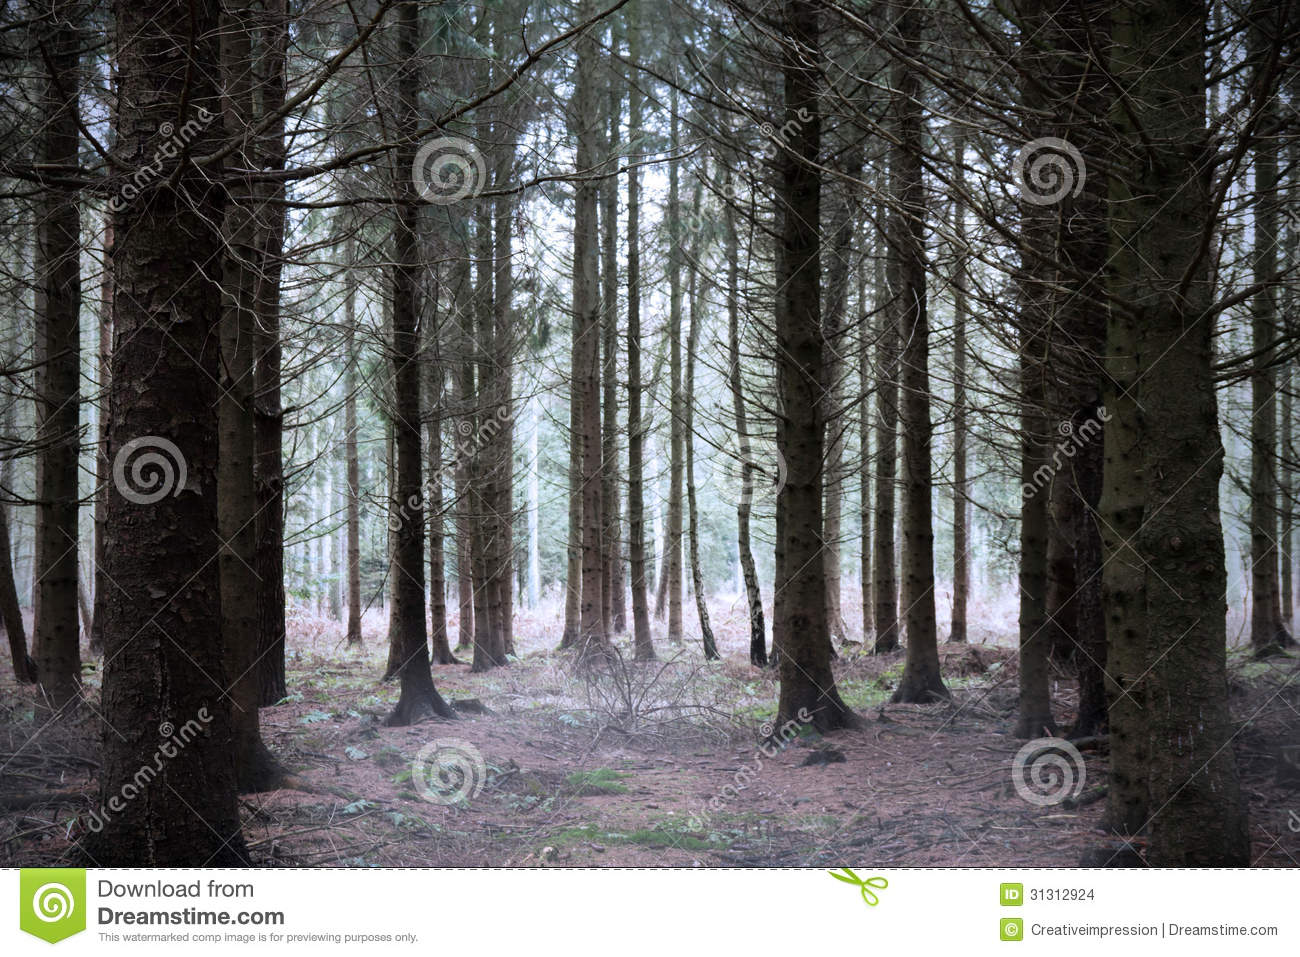 mysterious forest in winter - photo #24